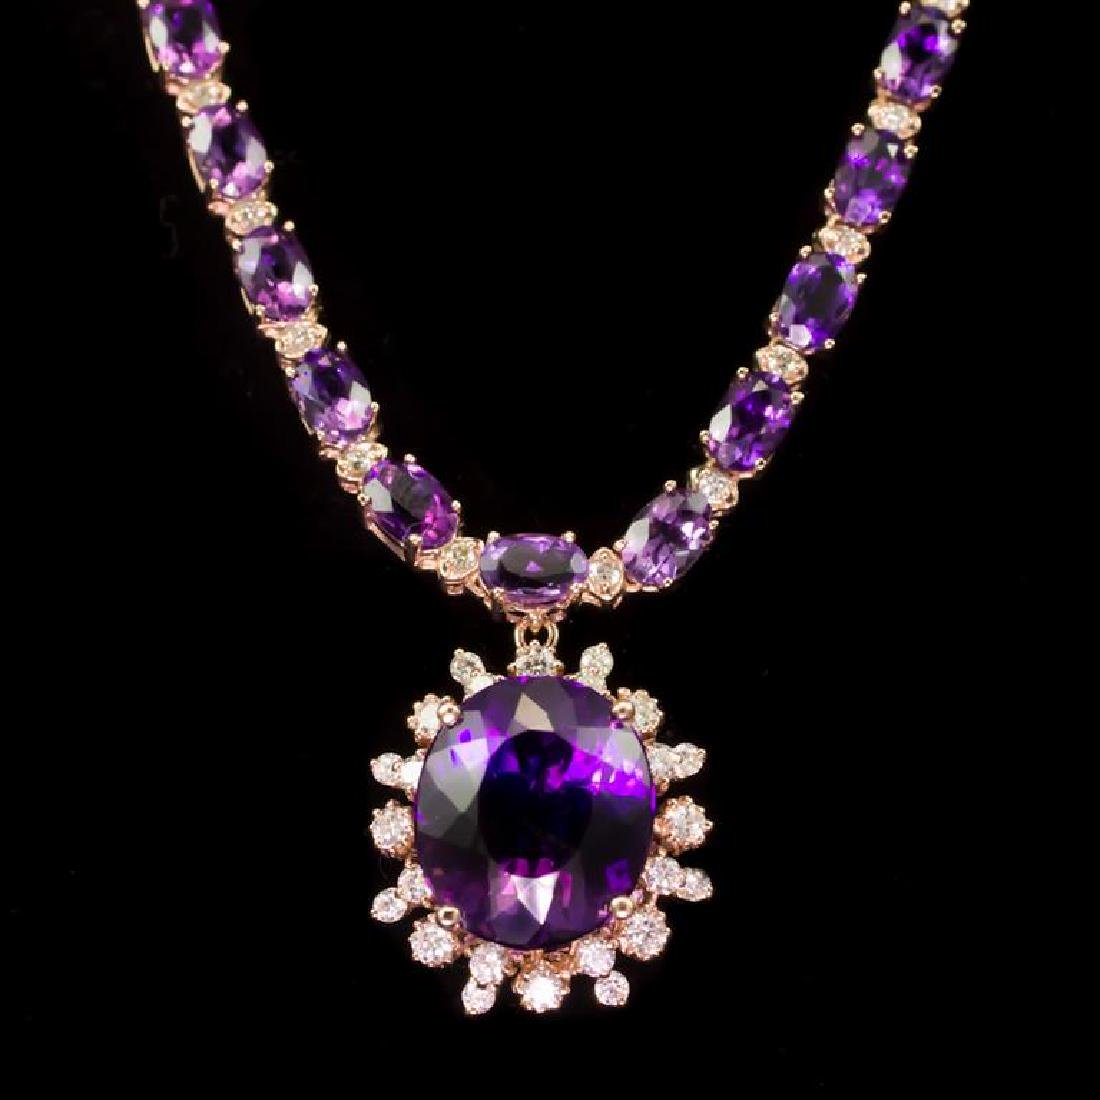 14K Gold 31.07ct Amethyst 2.45ct Diamond Necklace